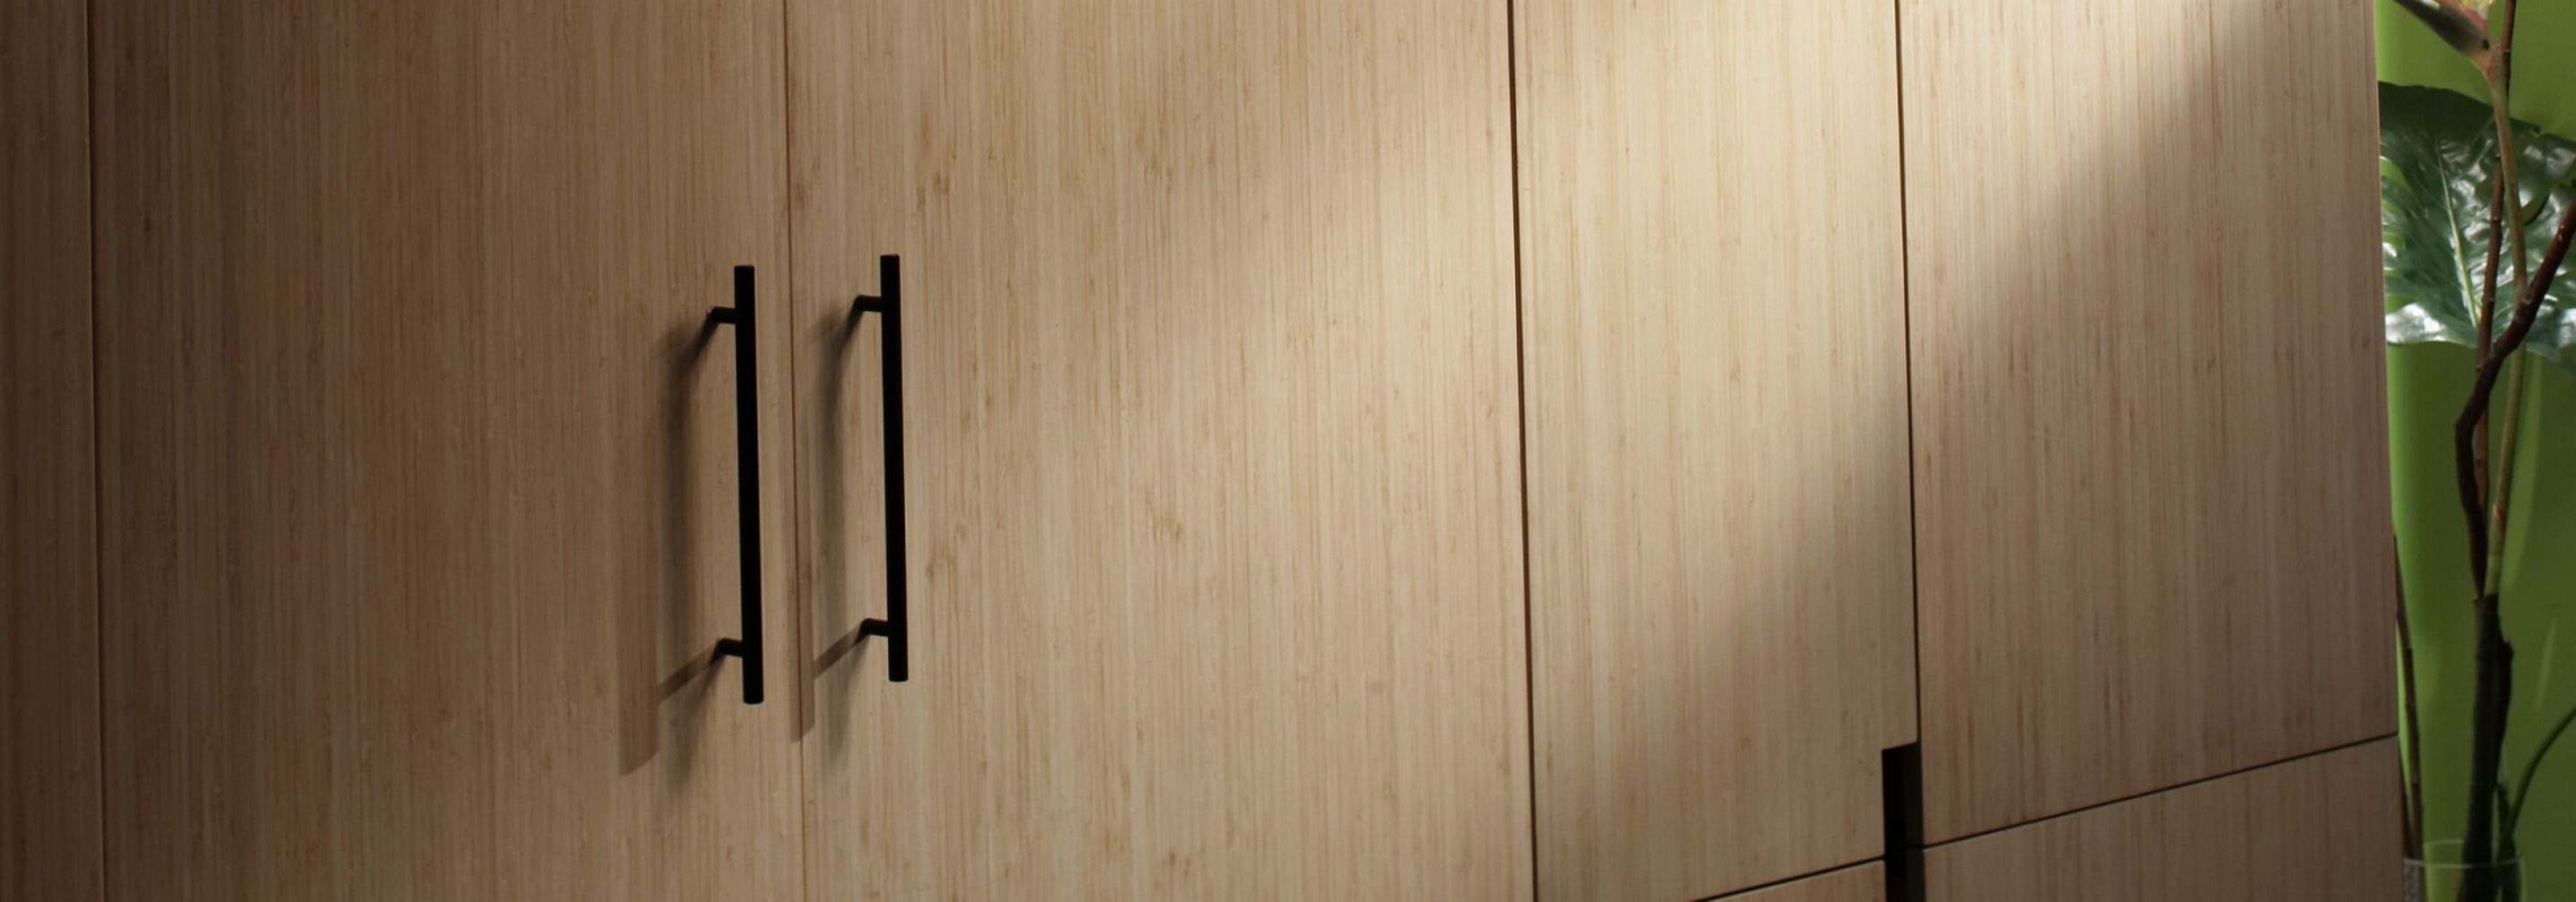 JennAir® Built-In Refrigerators in a side-by-side configuration. The panels are custom wood.